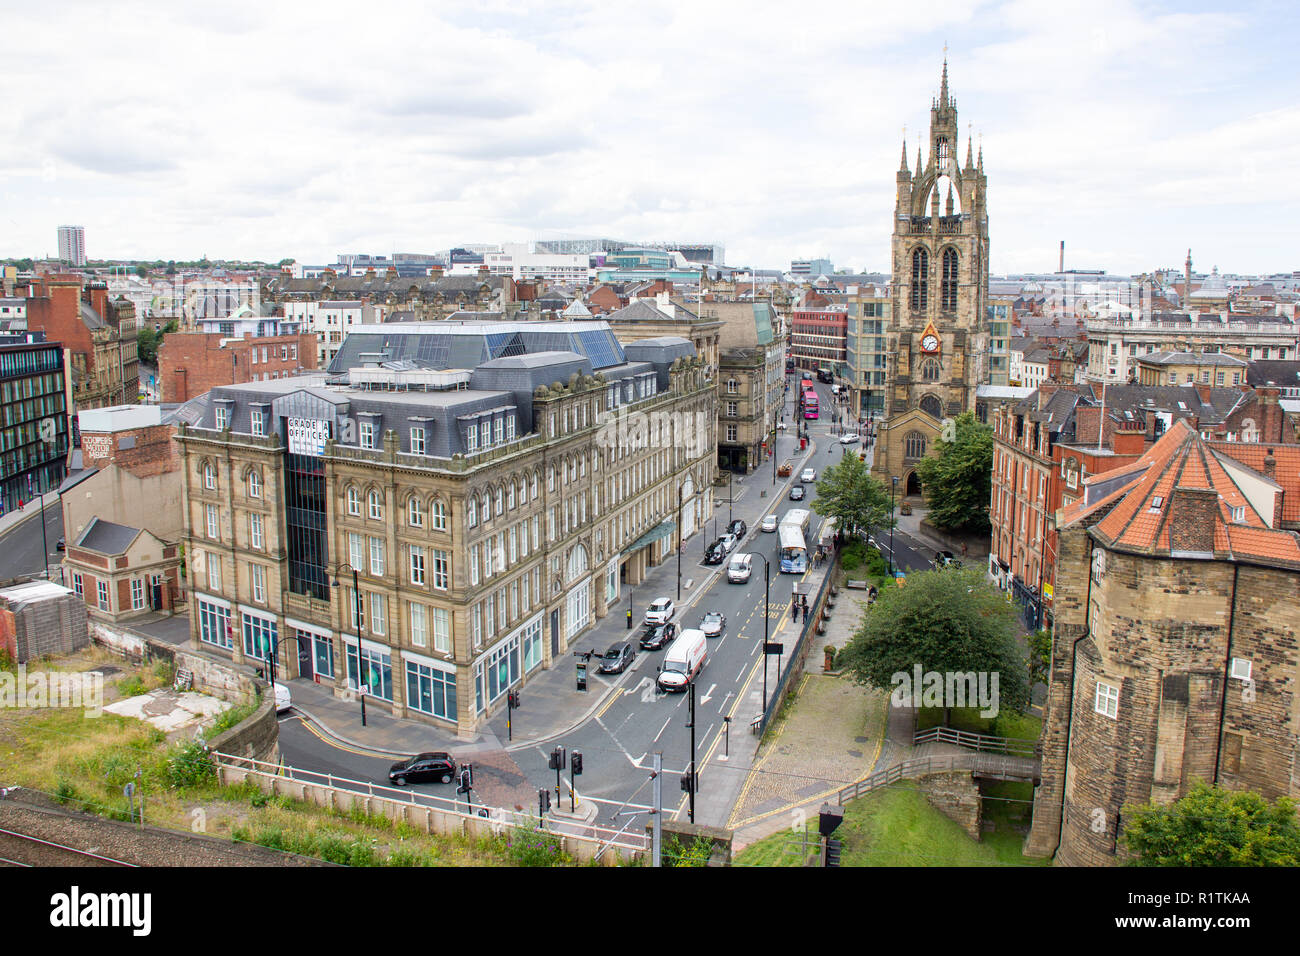 Newcastle upon Tyne/England - July 31st 2012: Newcastle Skyline railway though the city. View from Castlekeep Stock Photo